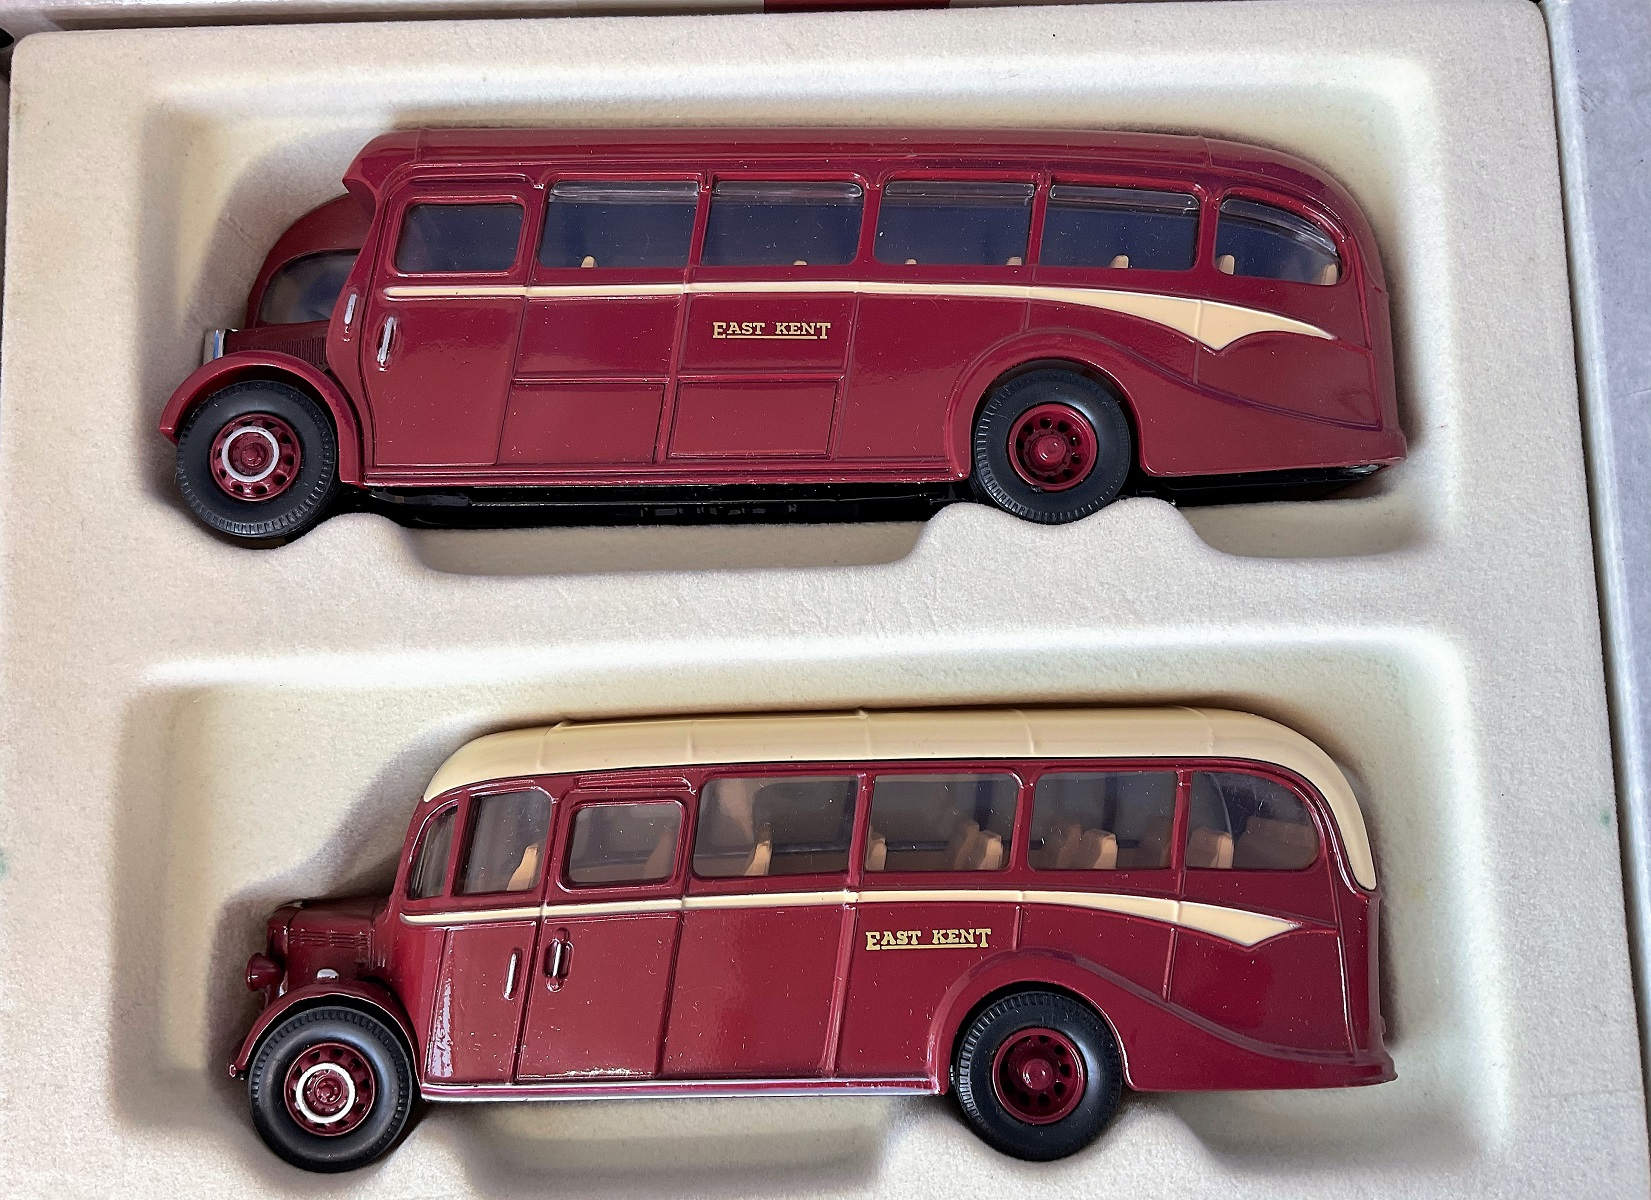 Vintage Toys. CORGI collection. TWO Die-cast metal and plastic EAST KENT busses. A 75 year quality - Image 2 of 2